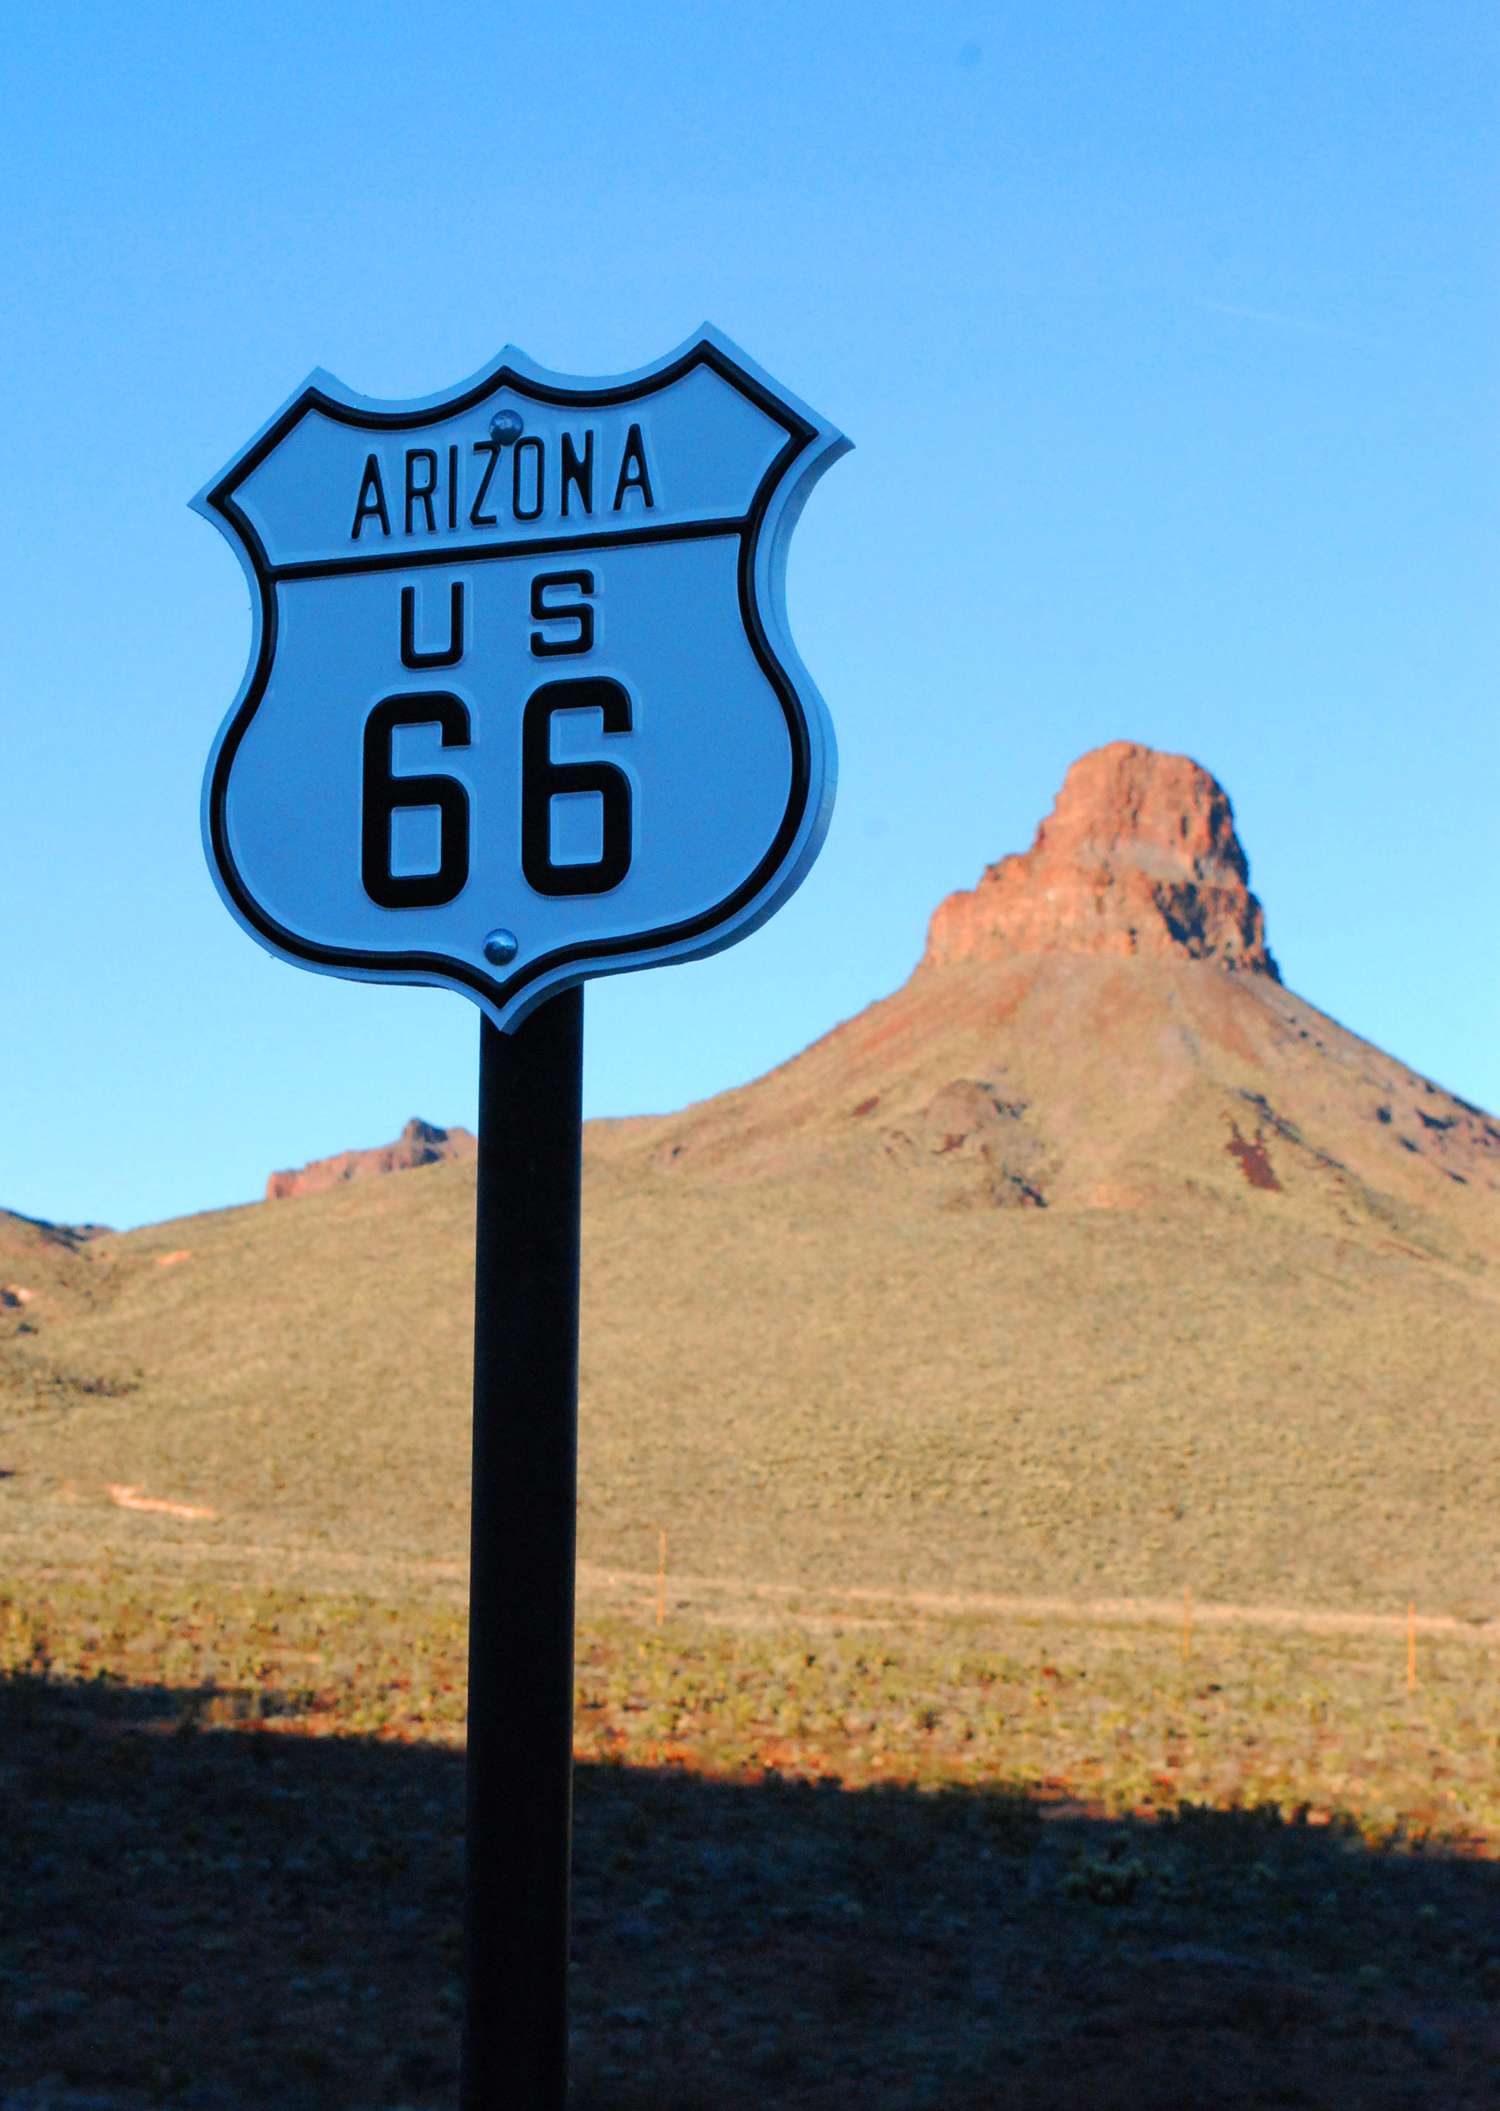 Route 66 Passport | vanishingroadsideblog